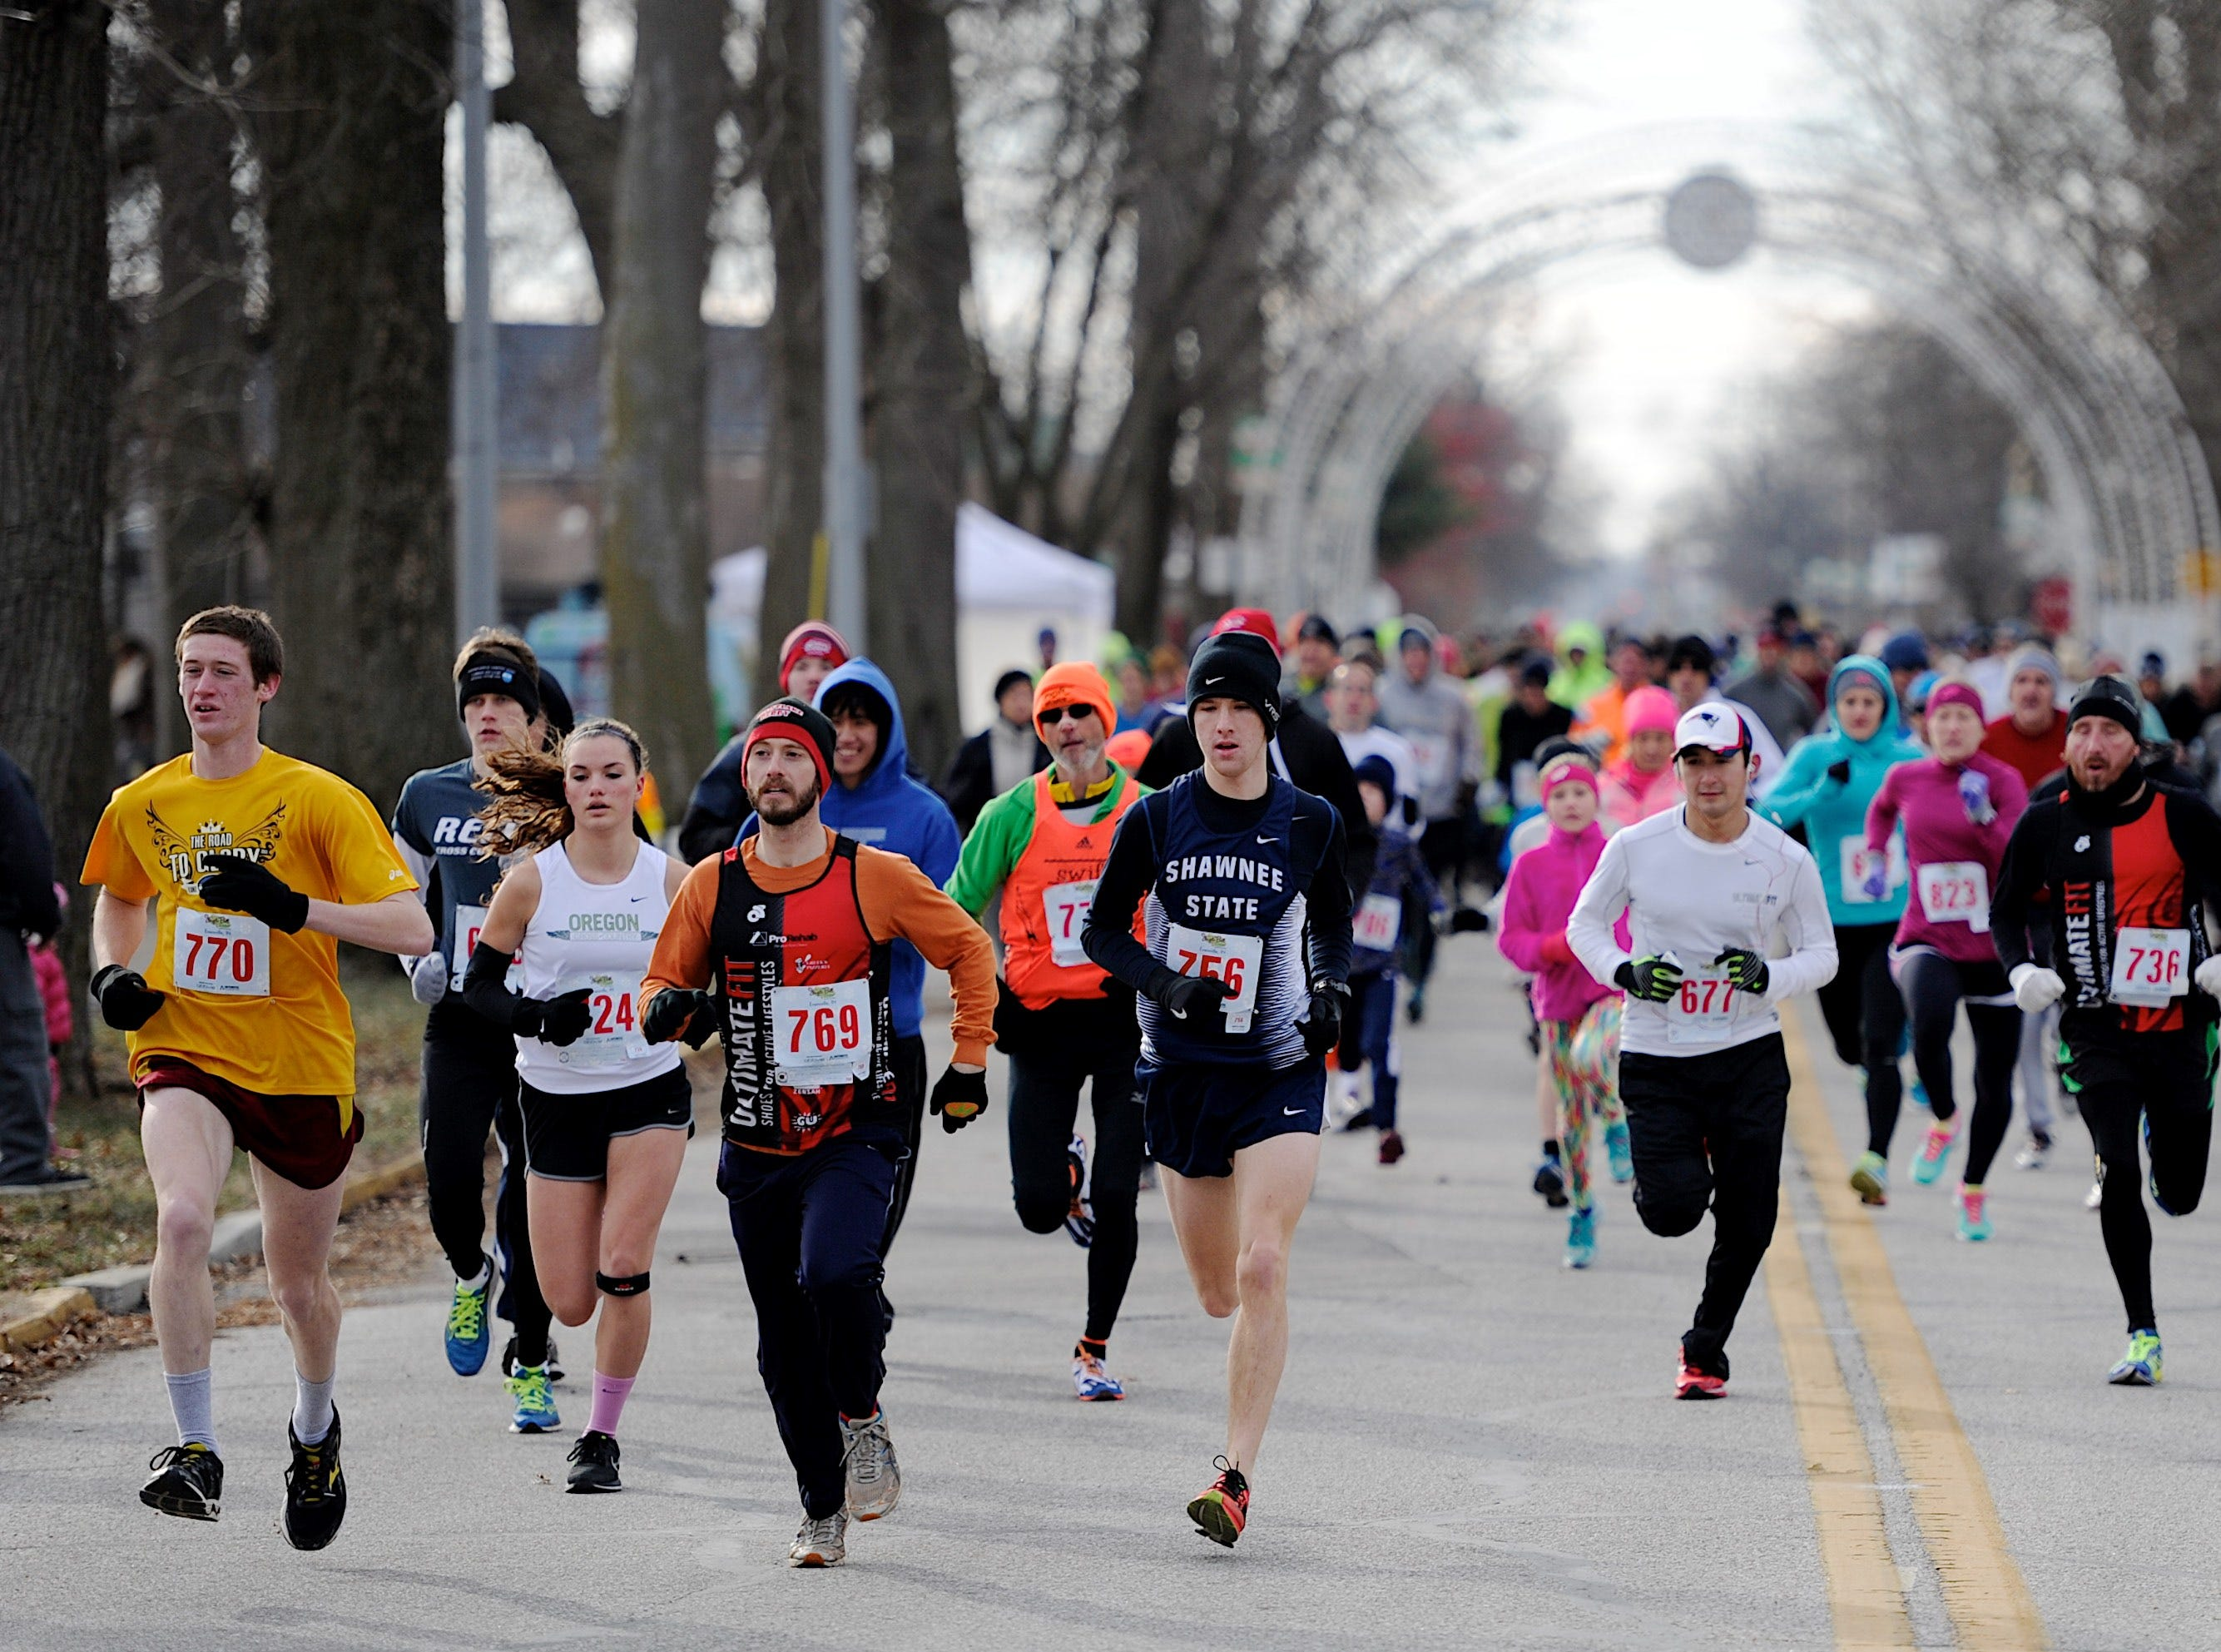 "Runners head in to the first turn as they begin the Day 1 Run 5K race at Garvin Park Thursday morning, January 1, 2015.  240 runners and walkers braved the 25 degree morning temperatures to participate in the race, which a portion of the proceeds will be donated to the family of Rebekah Shinabarge, who passed away Christmas morning.  ""We're trying to keep the tradition going,"" race director Jim Bush said of his company Rise Up and Run's taking over the race this year. He said they've had the race for years but this was the first year Rise Up and Run has organized it."